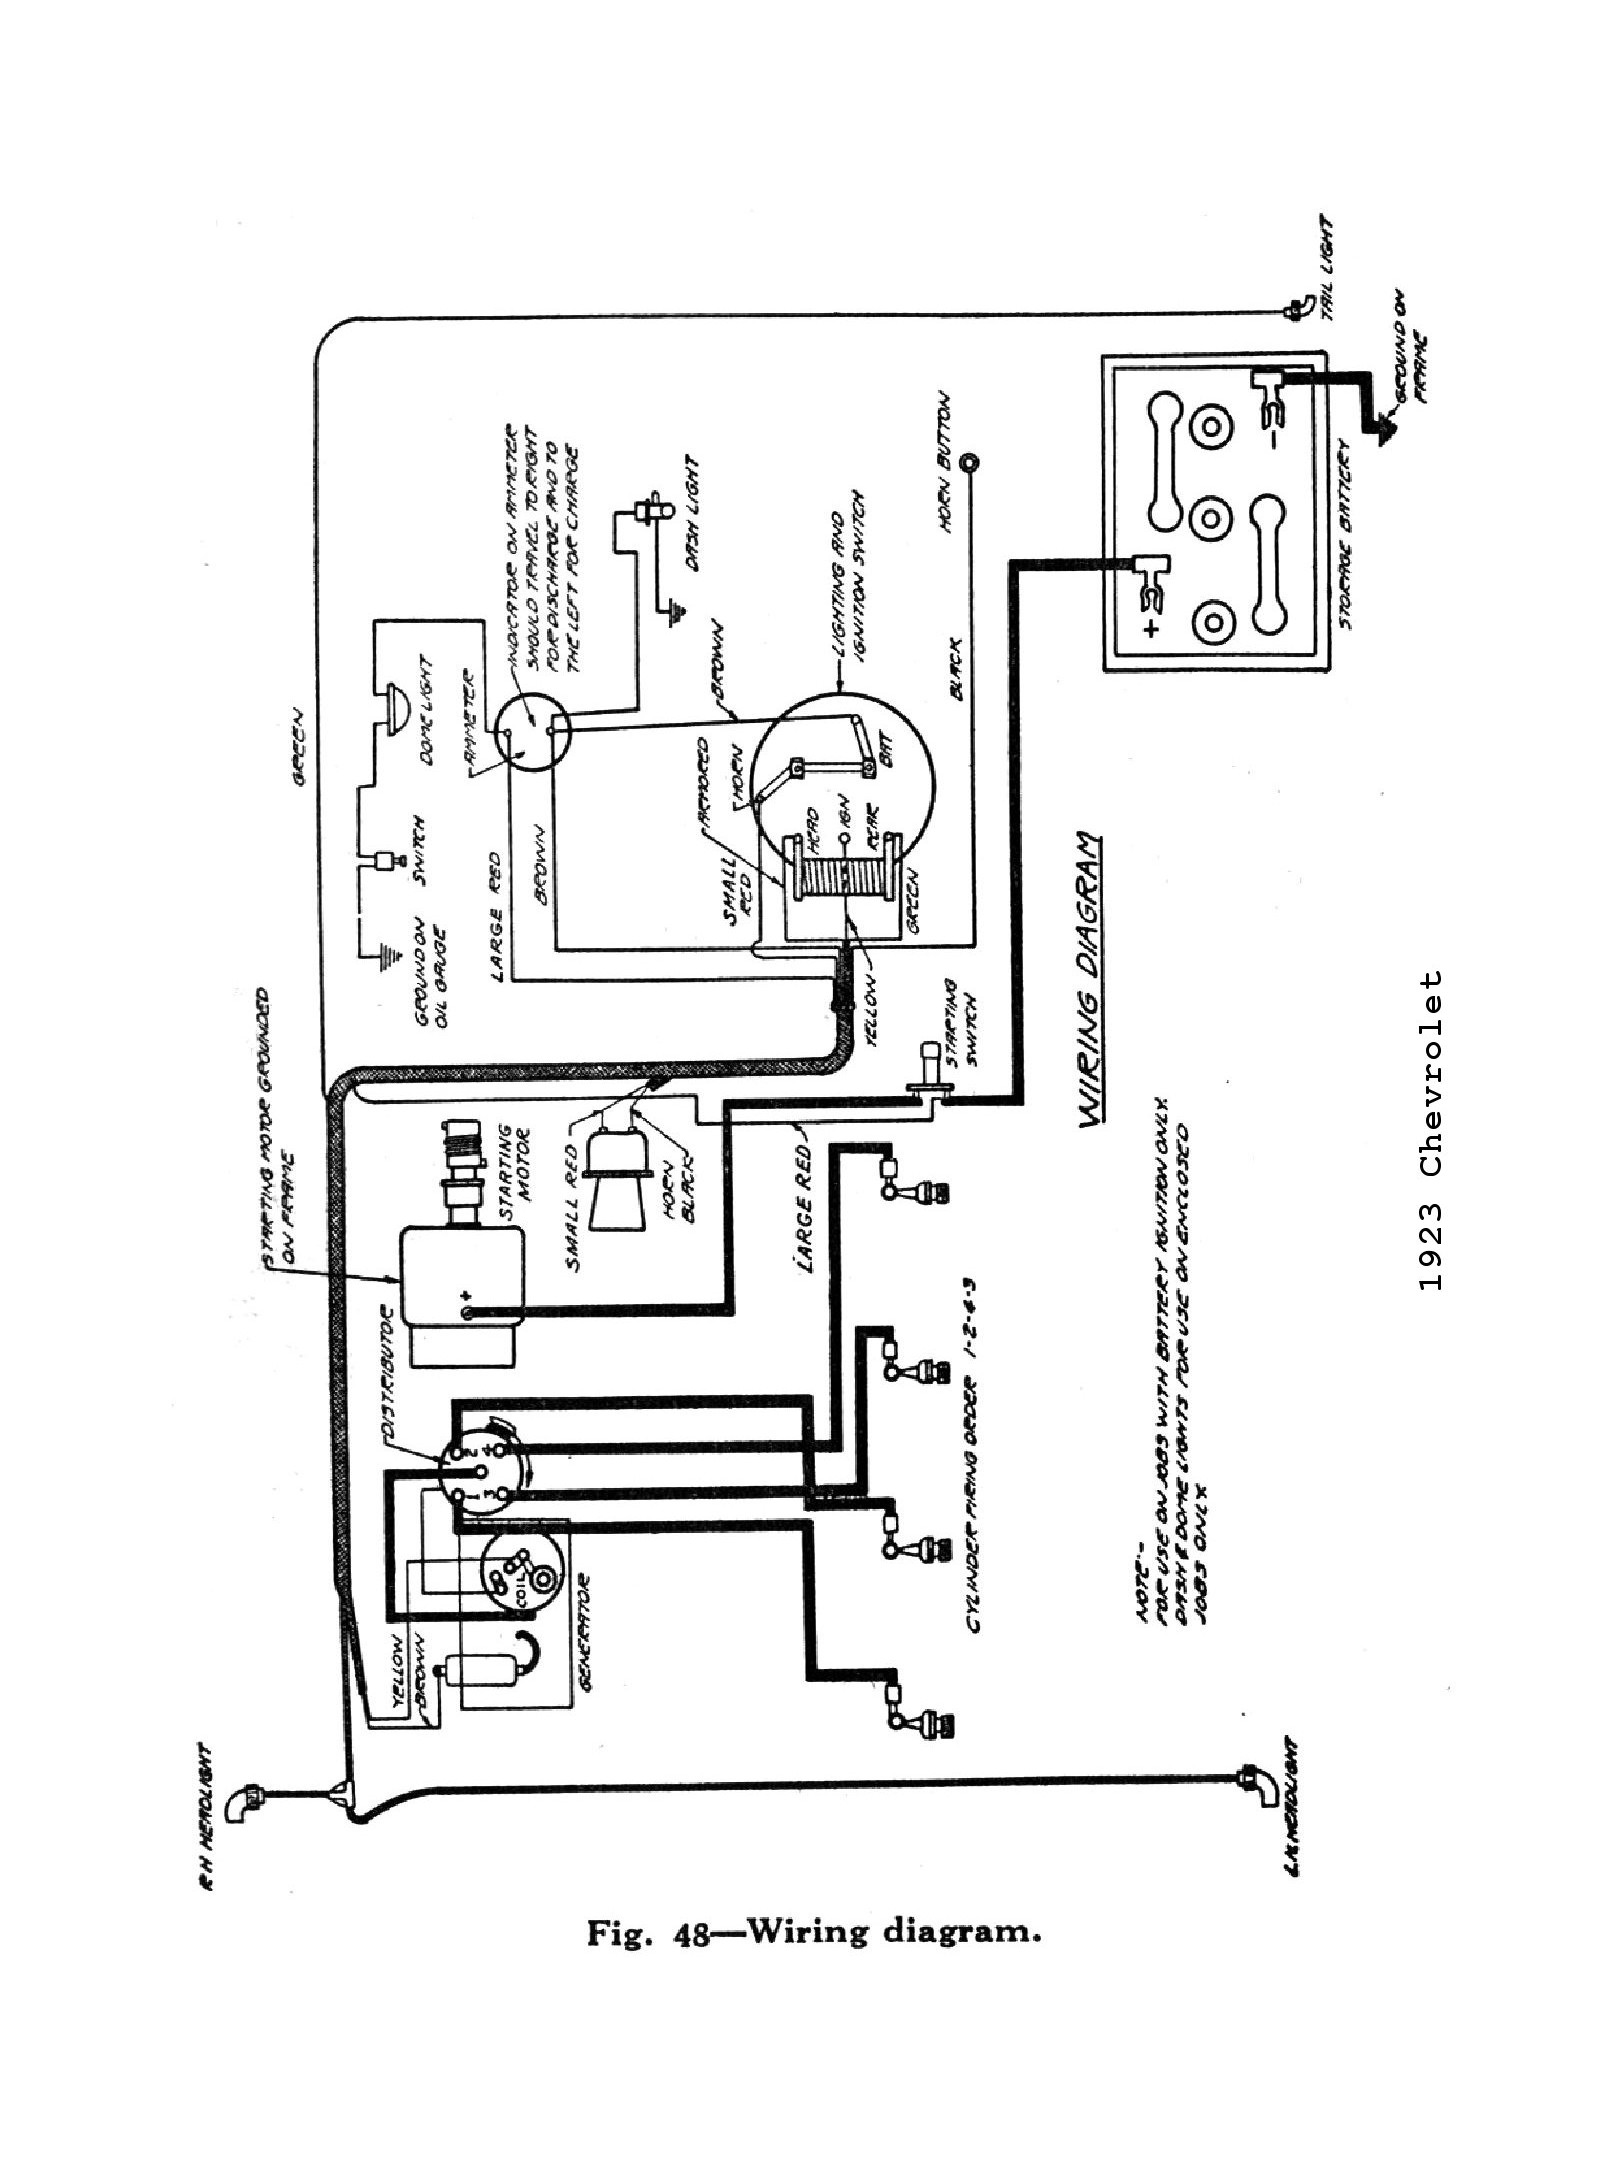 1931 chevy wiring diagram